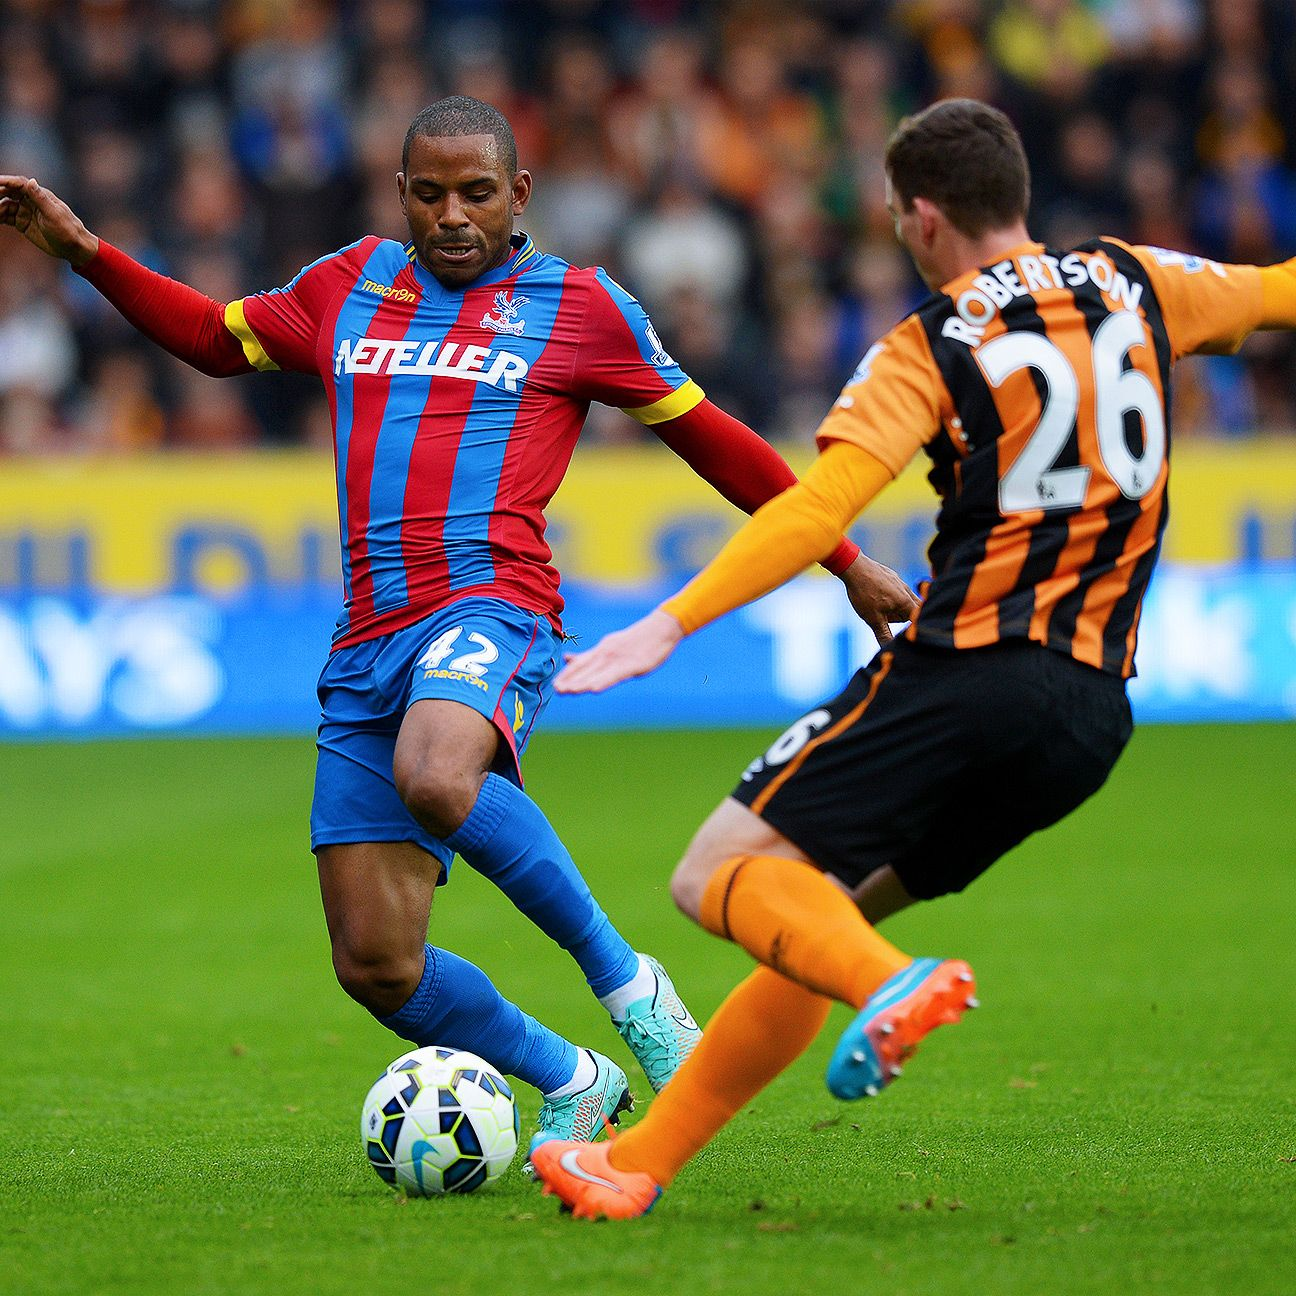 On Saturday Crystal Palace forward Jason Puncheon was the latest opponent to be thwarted by rising star defender Andy Robertson of Hull City.